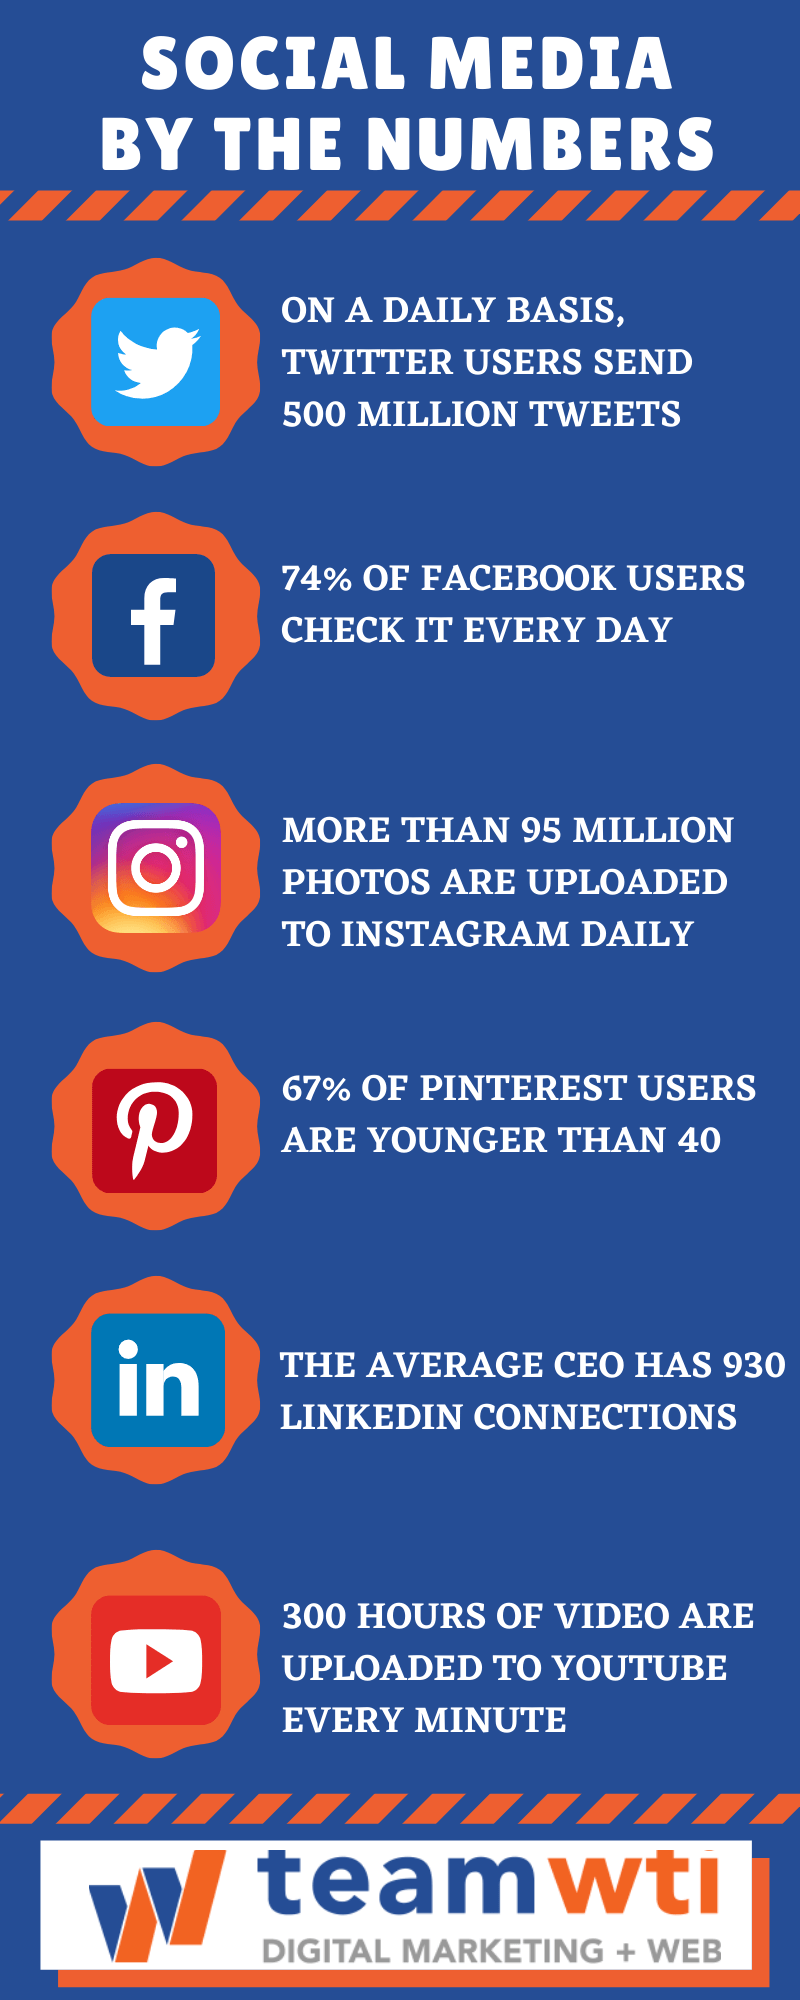 Social Media's Huge Role in Daily Life | World Social Media Day